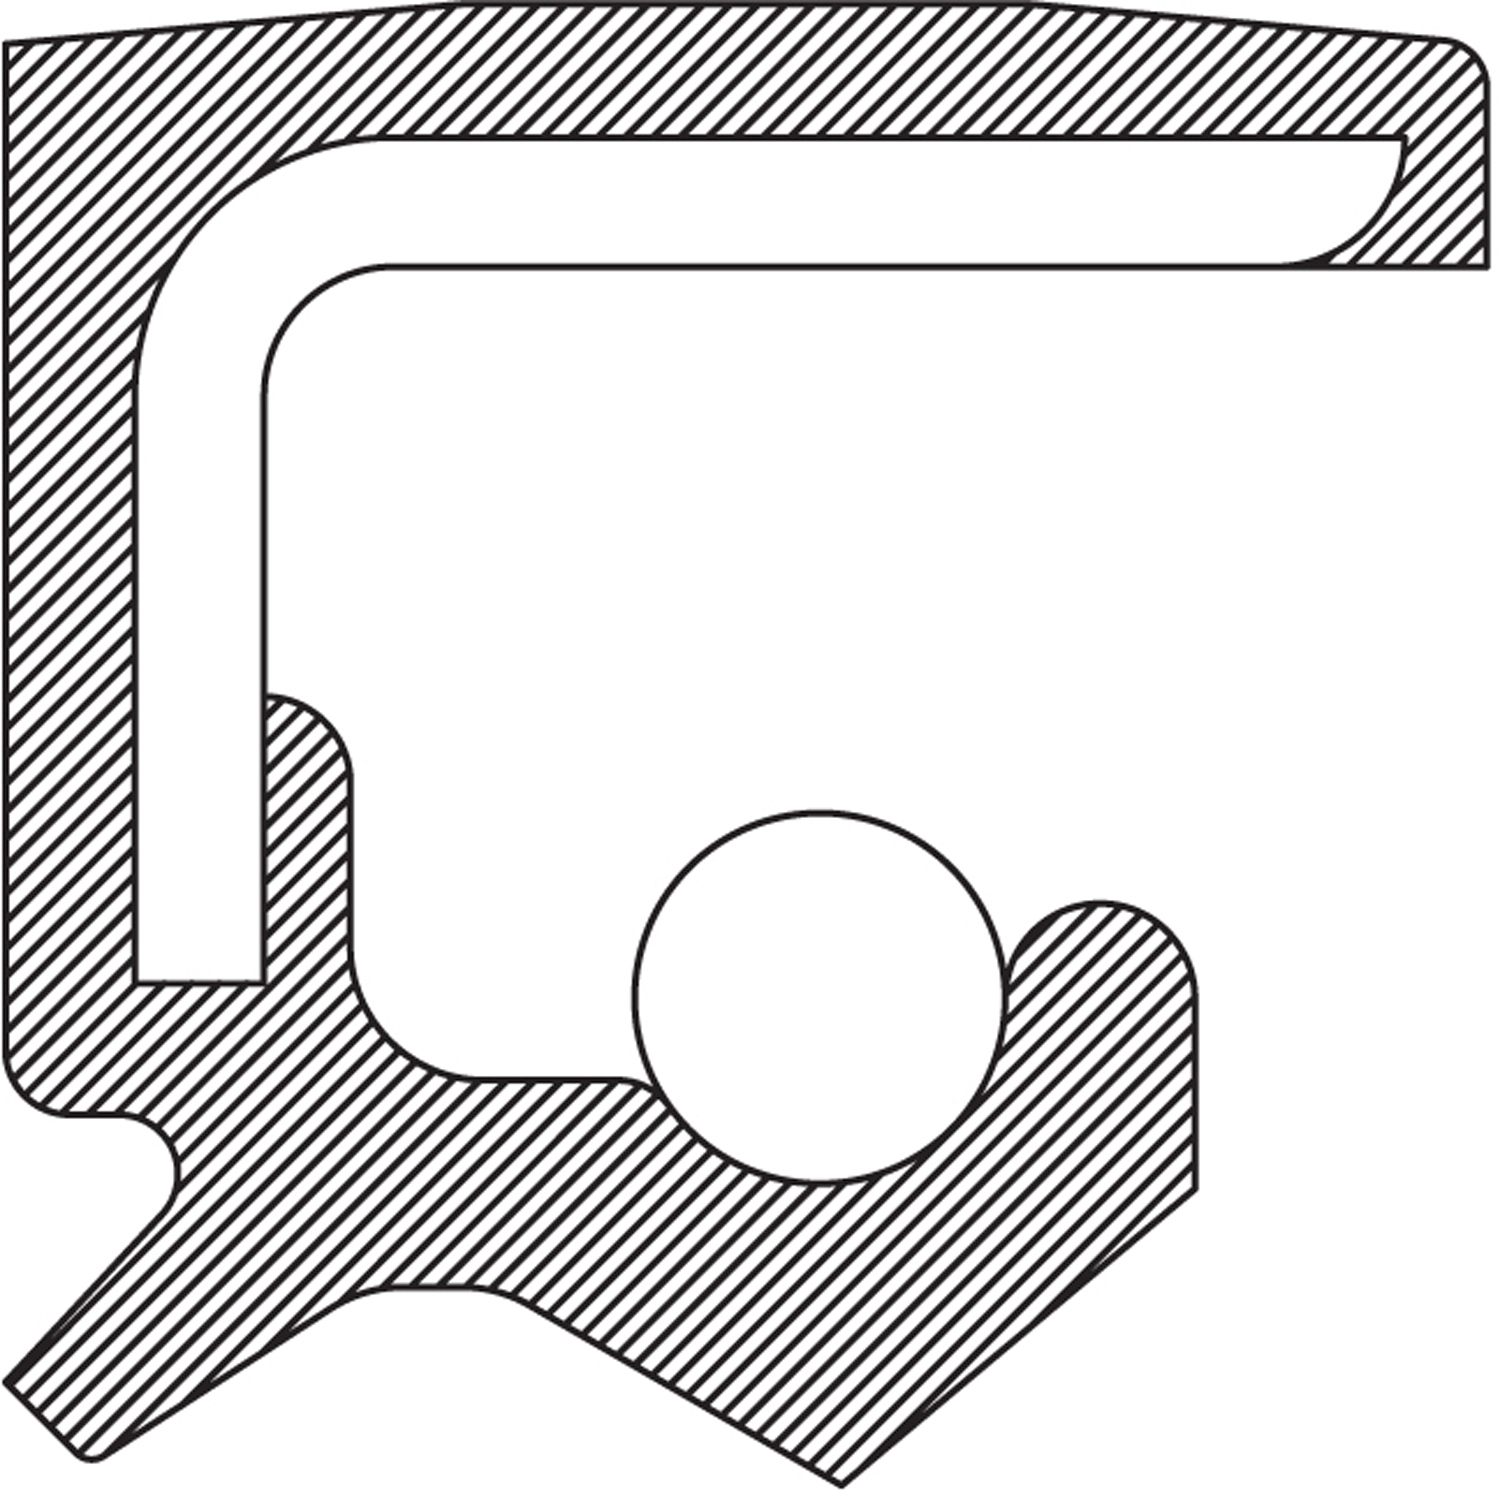 National Axle Shaft Seal